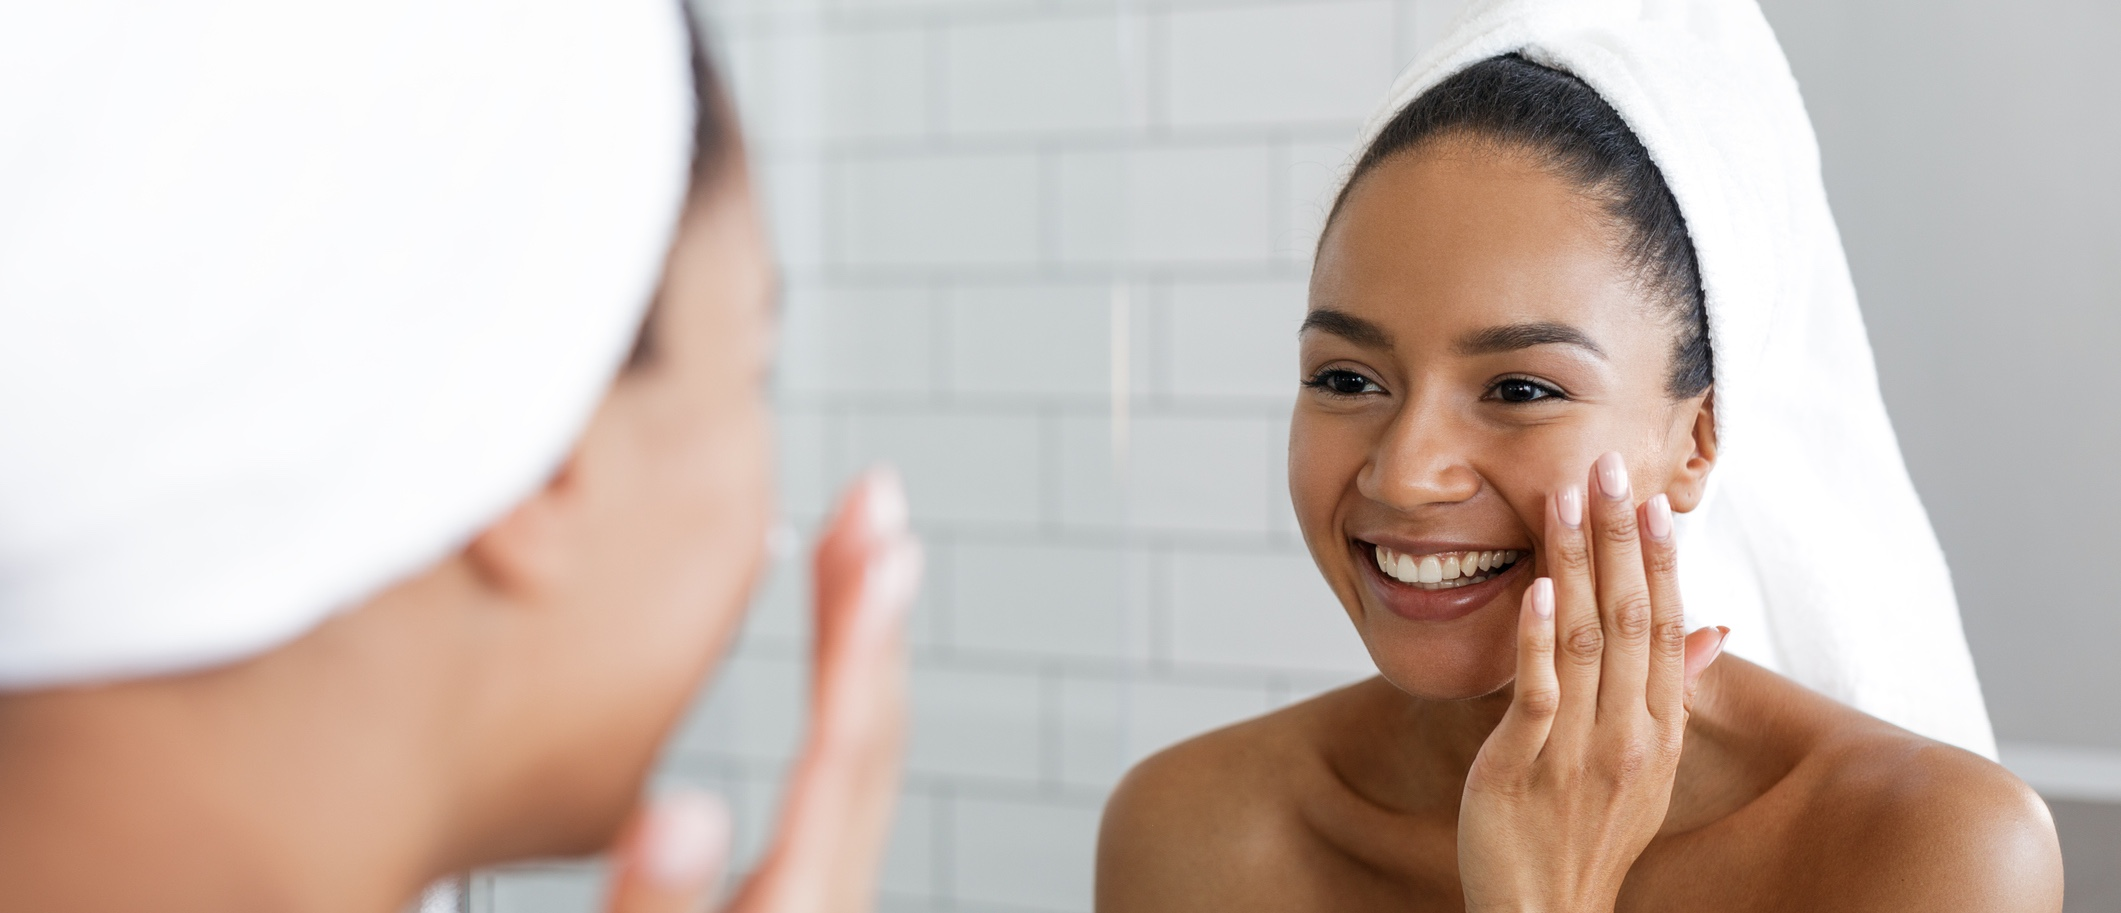 Happy woman putting on facial moisturizer with hand in bathroom mirror